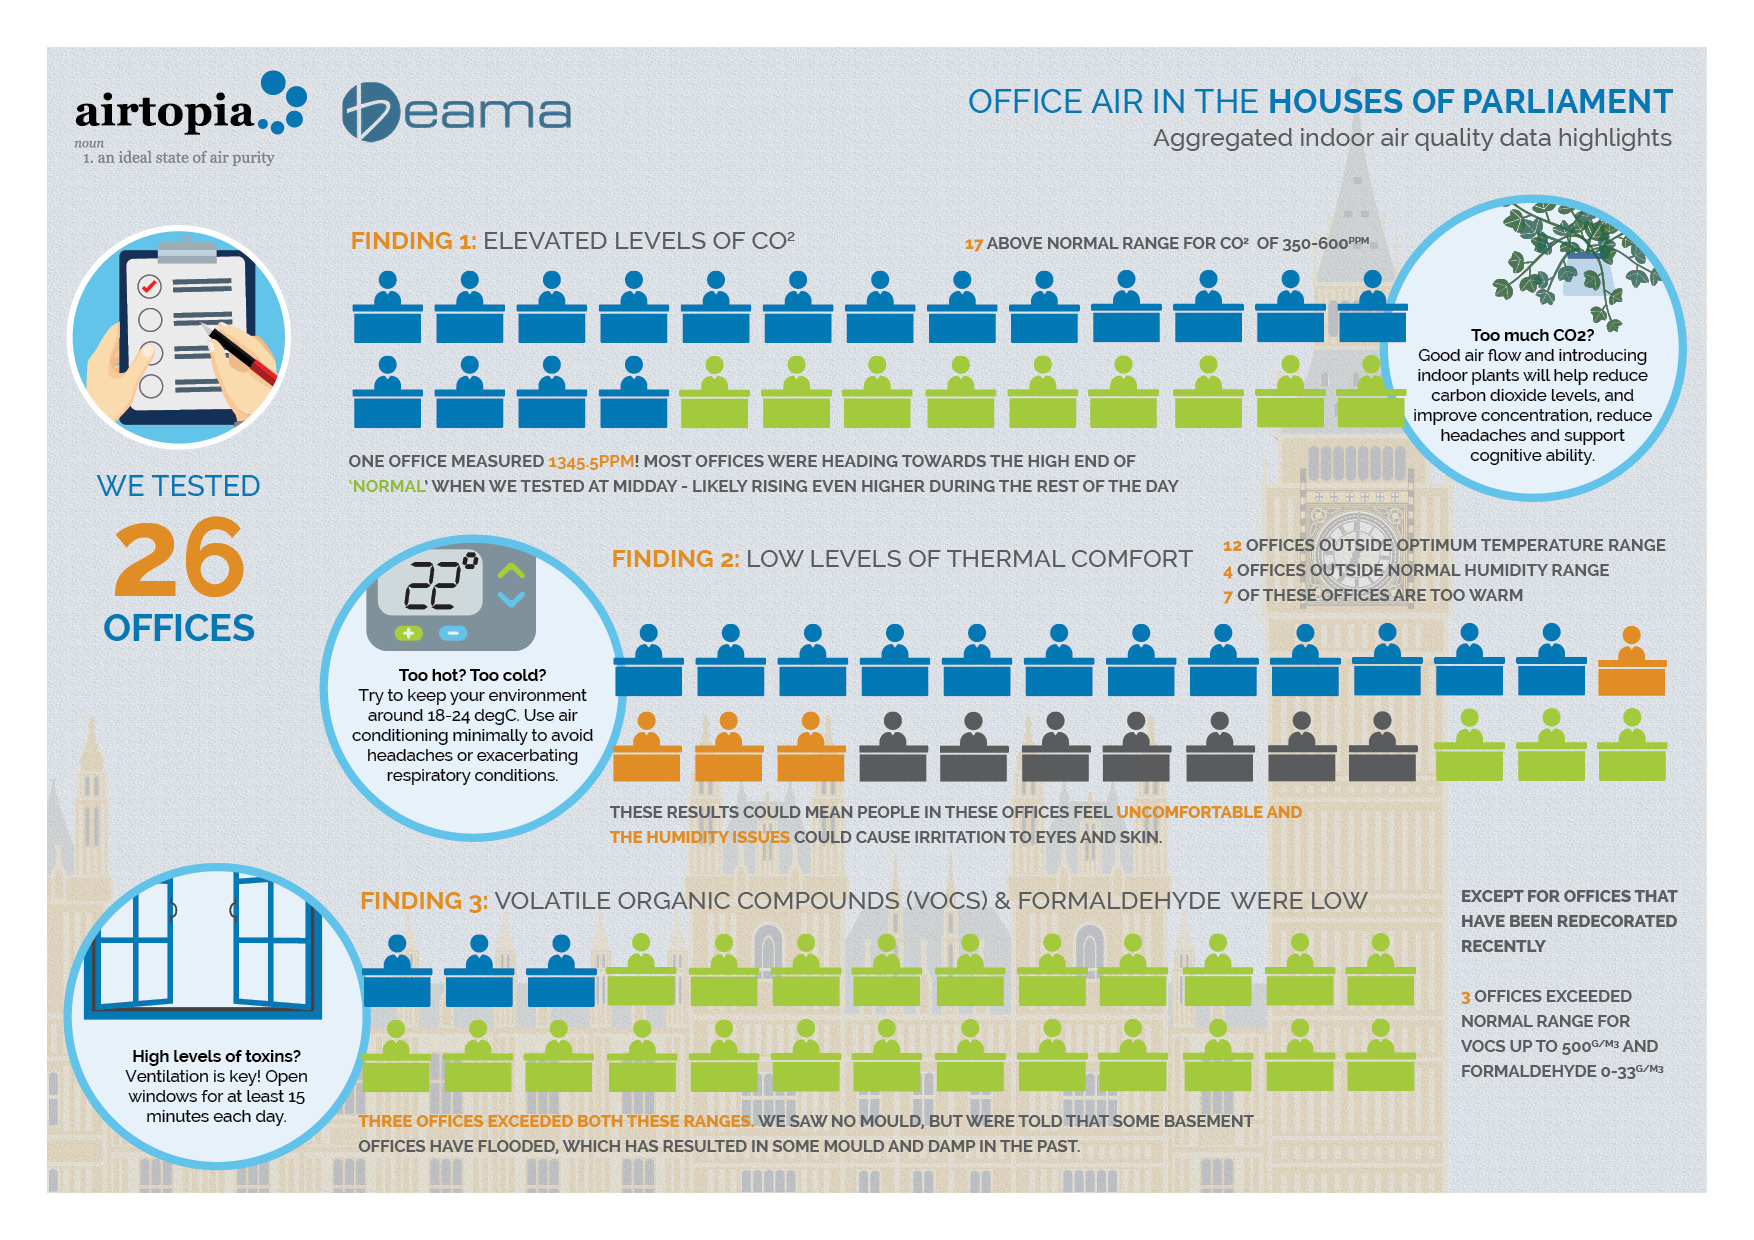 infographic - airtopia tested 26 mp offices IAQ